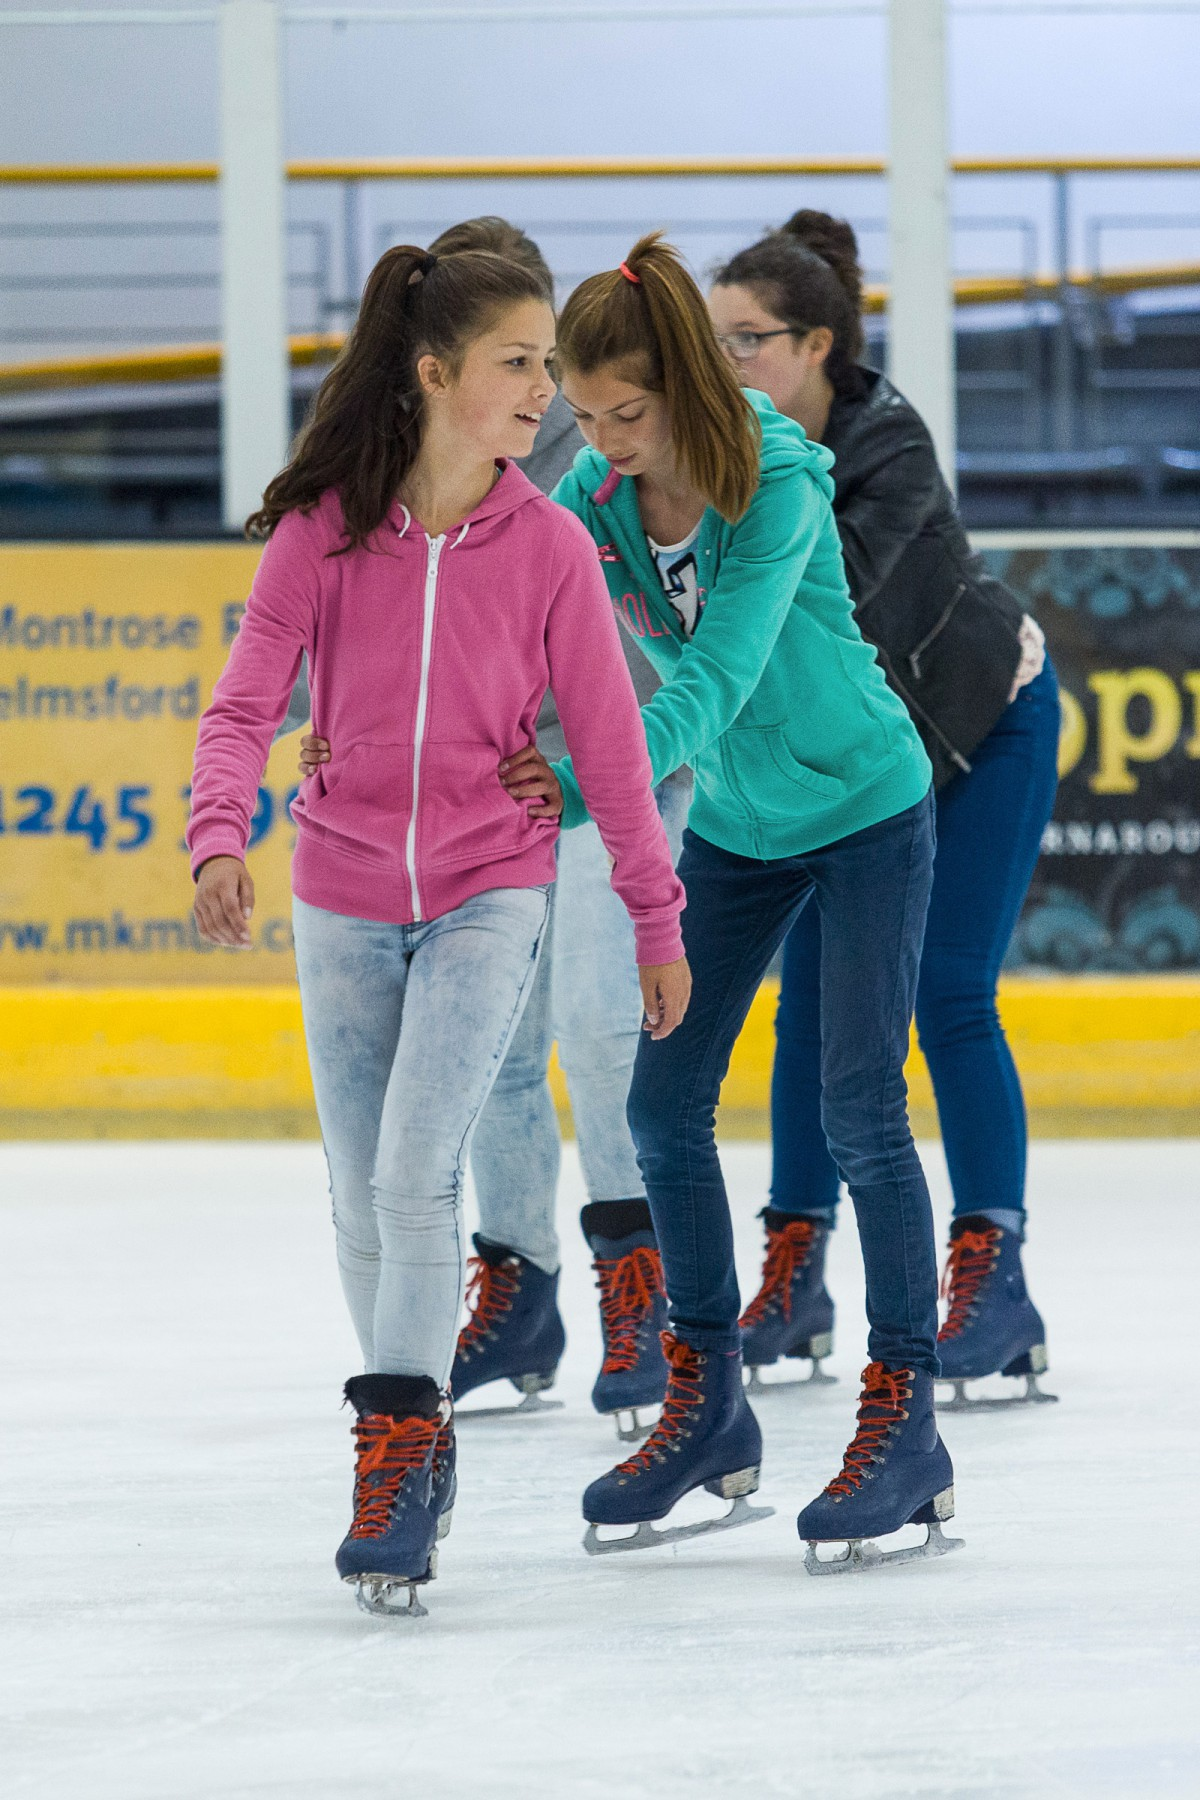 RiversideIceRink250614 101